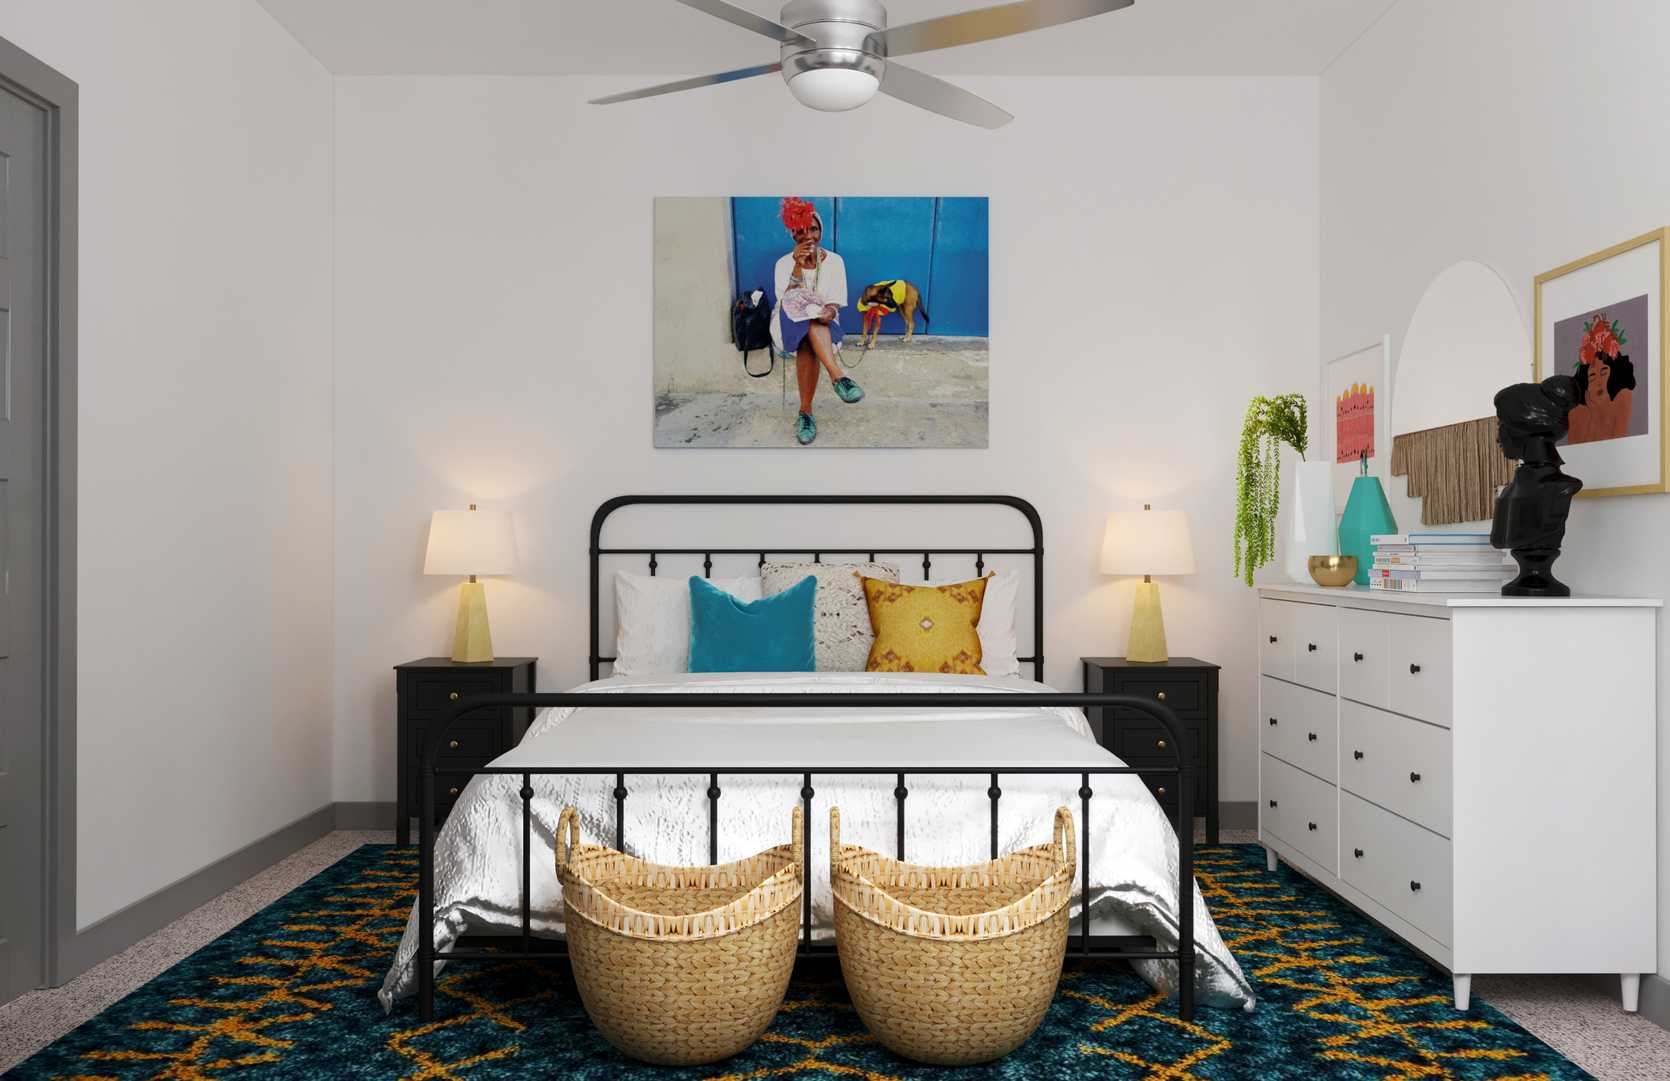 5 Ways To Nail A Jet Setter Bohemian Vibe In Your Bedroom Havenly Blog Havenly Interior Design Blog